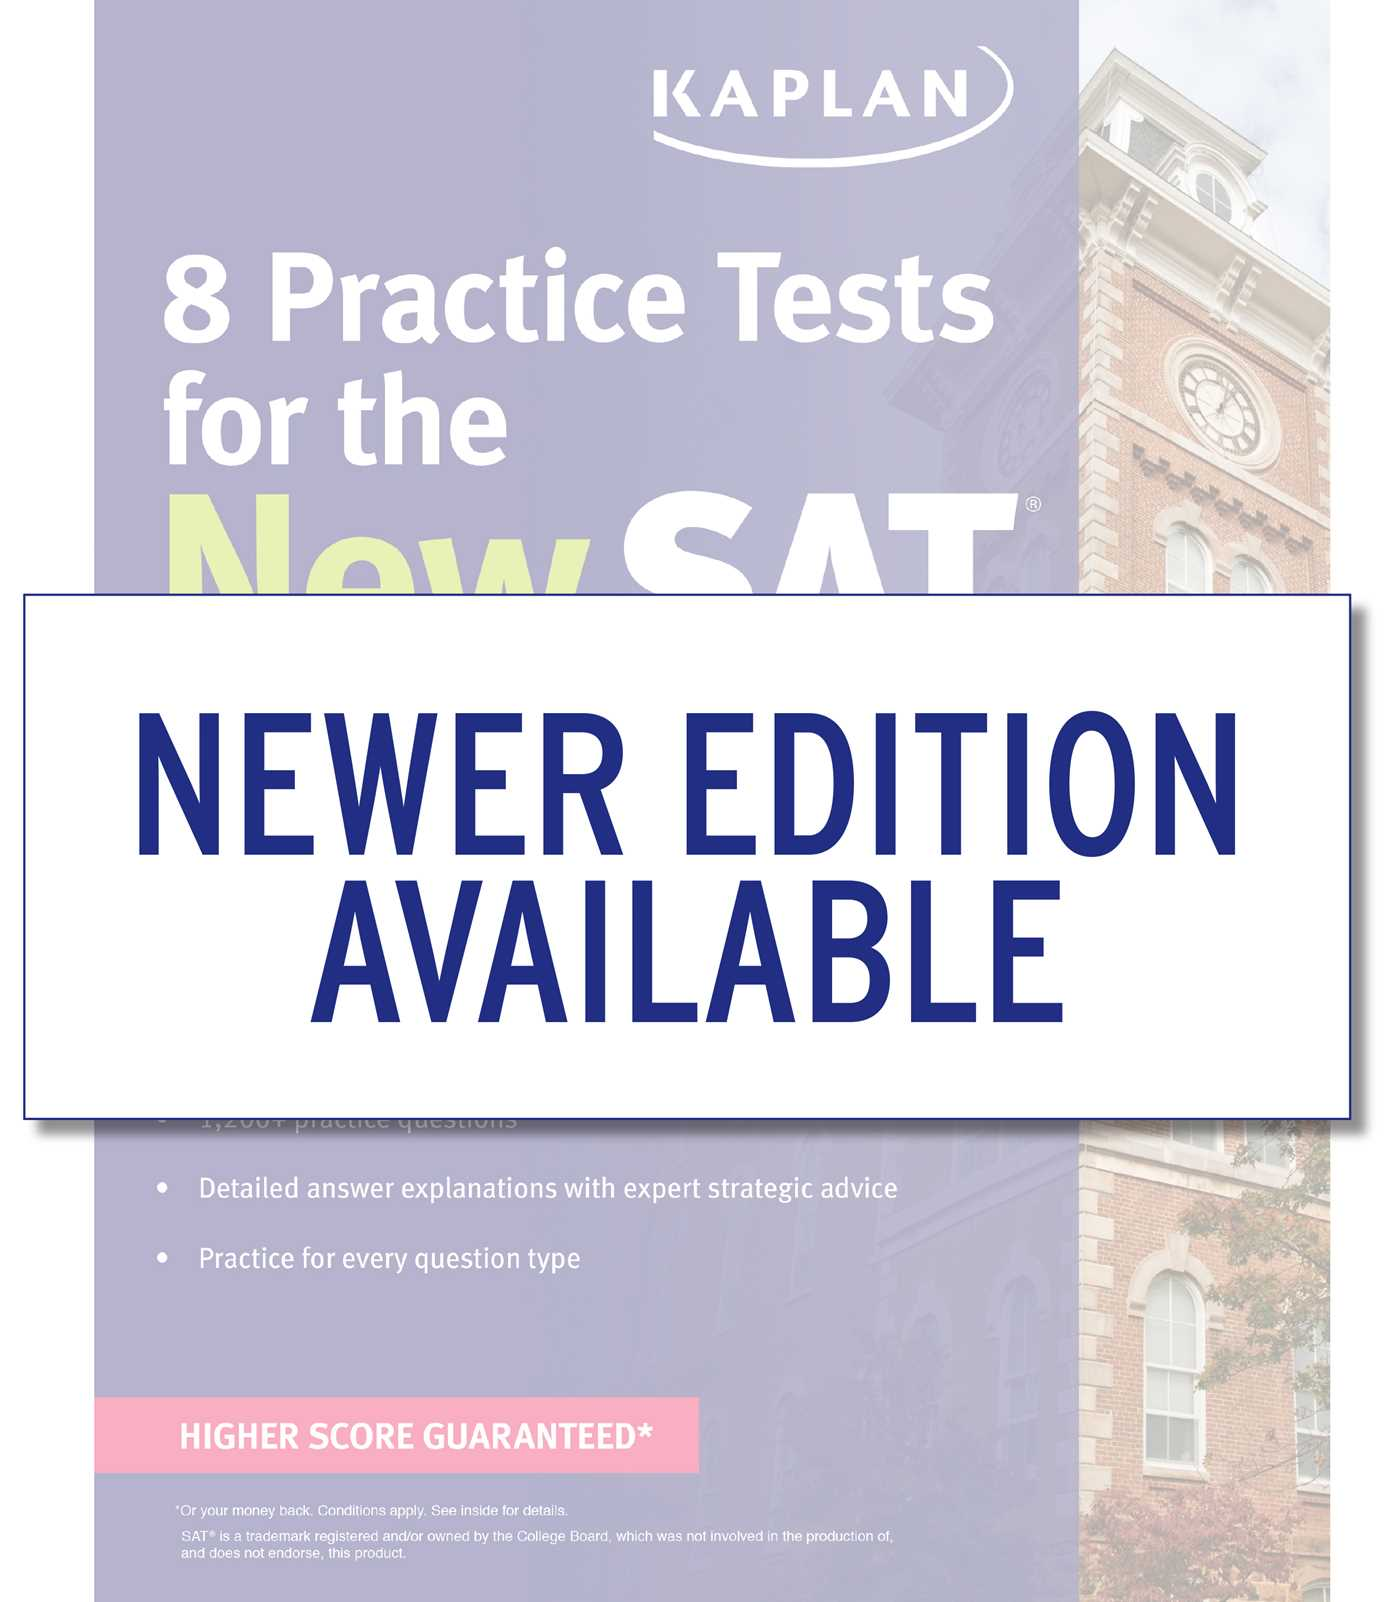 Who Is the SAT Study Guide For